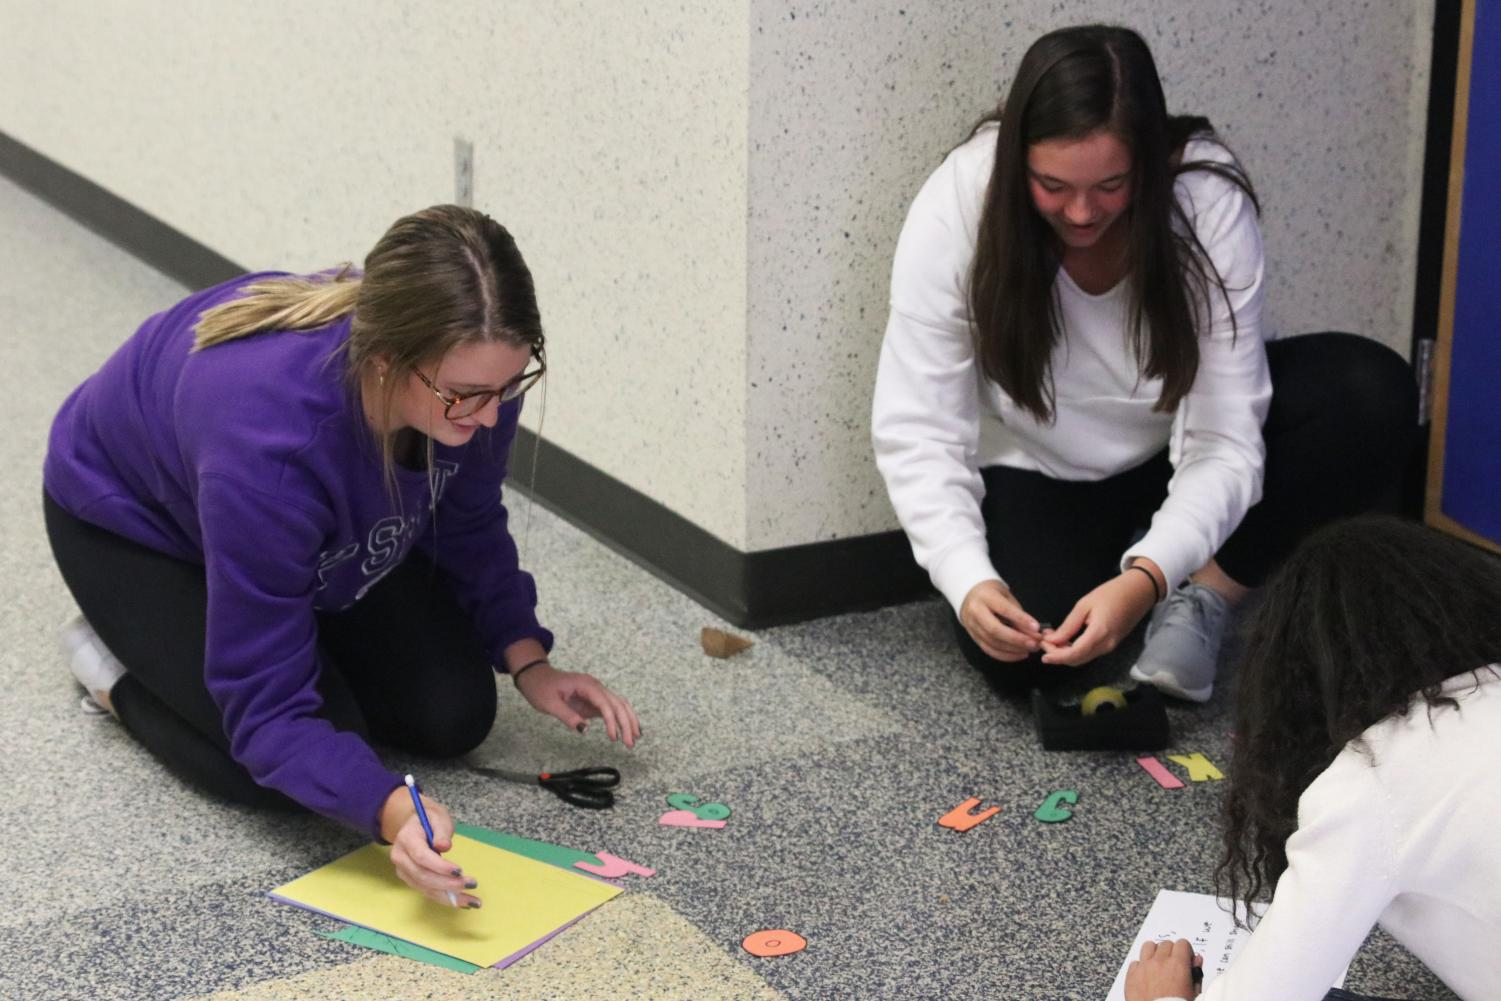 Cutting out letters, juniors Kenzie Harris and Ryleigh Reigle create their seminar door decorations. Throughout the past couple weeks, students participated in the annual Red Ribbon Week with this fun activity to express the effects of vaping and alcohol on teens.